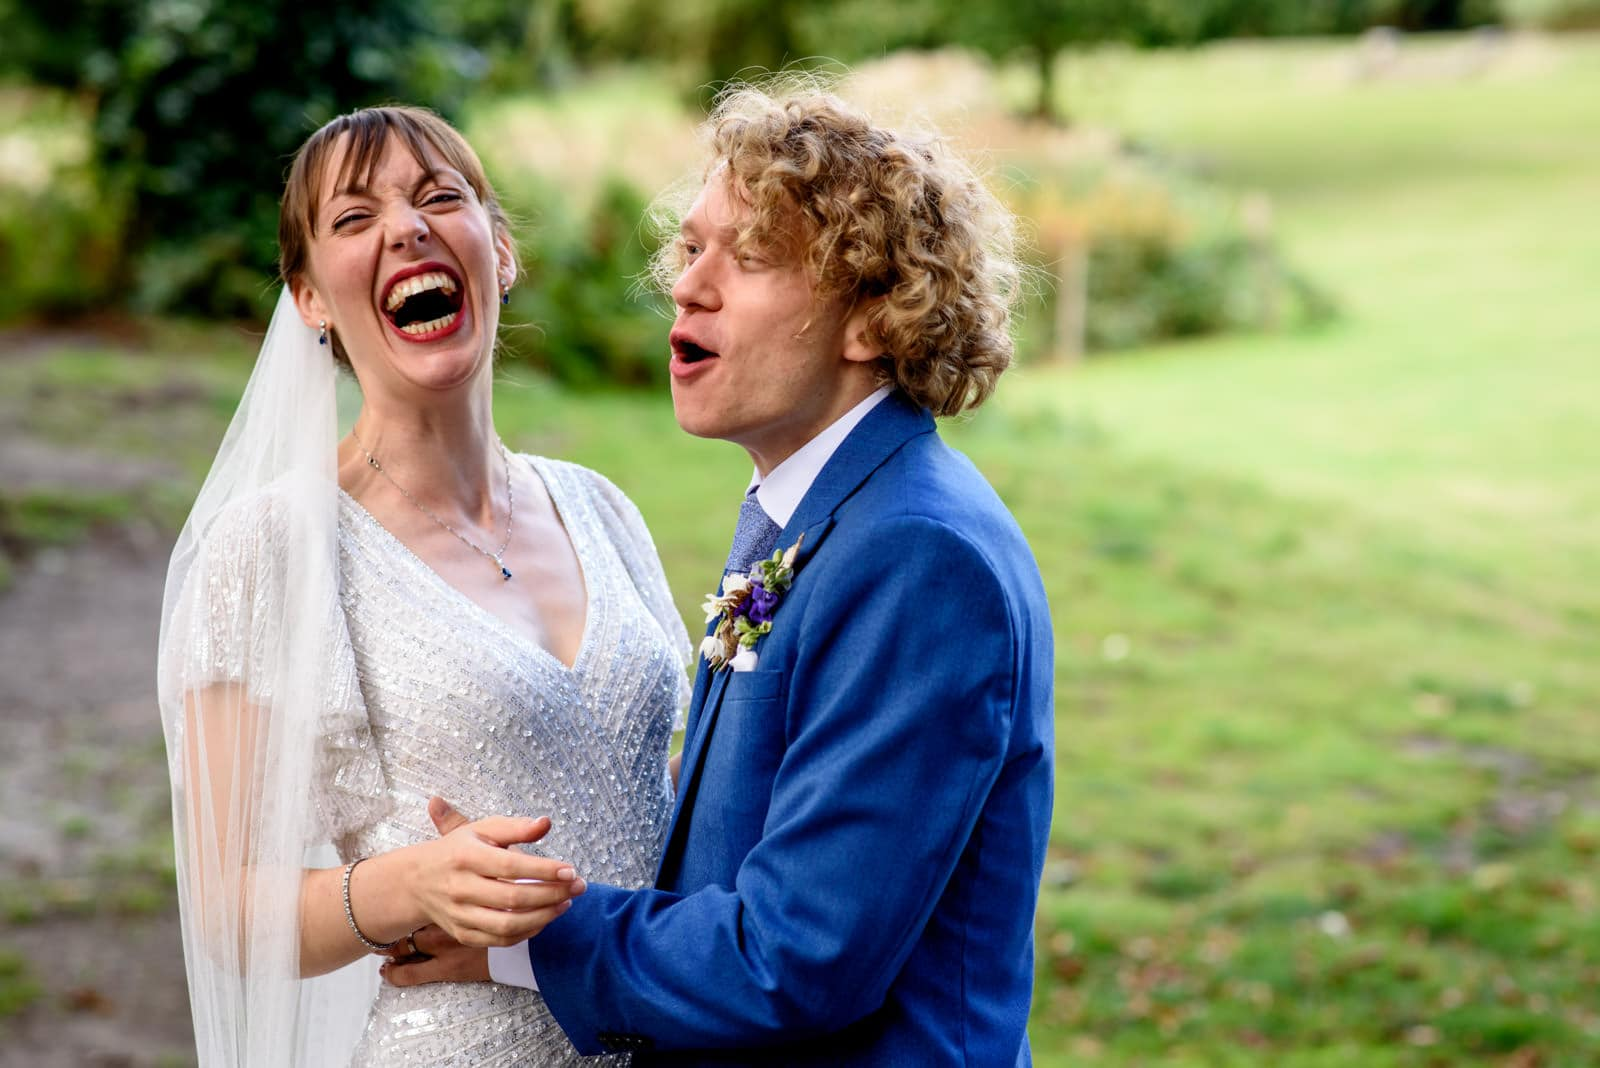 Bride and groom in blue suit laughing during portraits